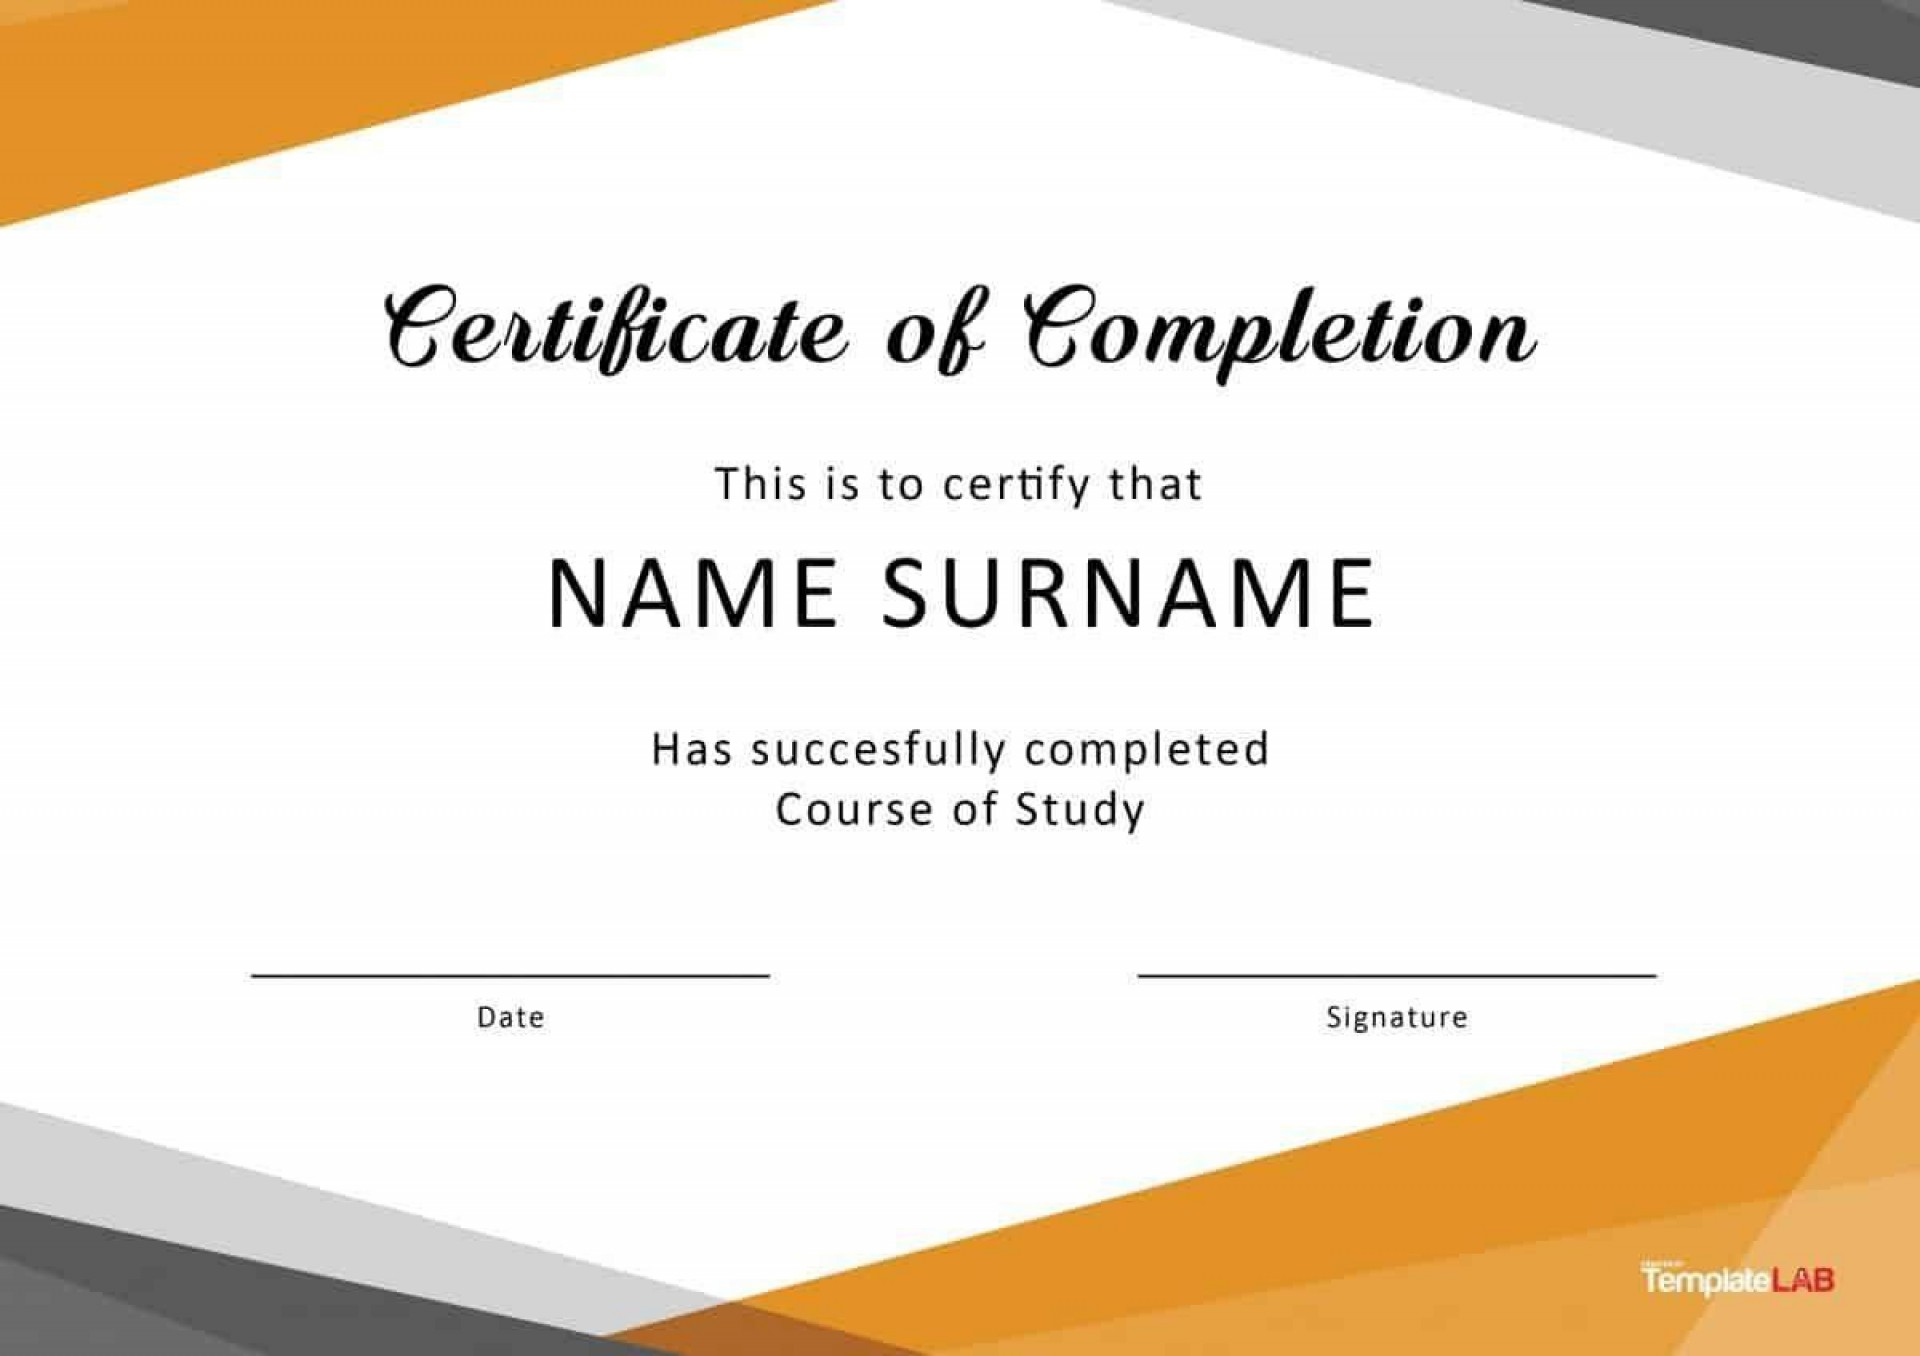 002 Imposing Training Certificate Template Free Inspiration  Computer Download Golf Course Gift Word1920